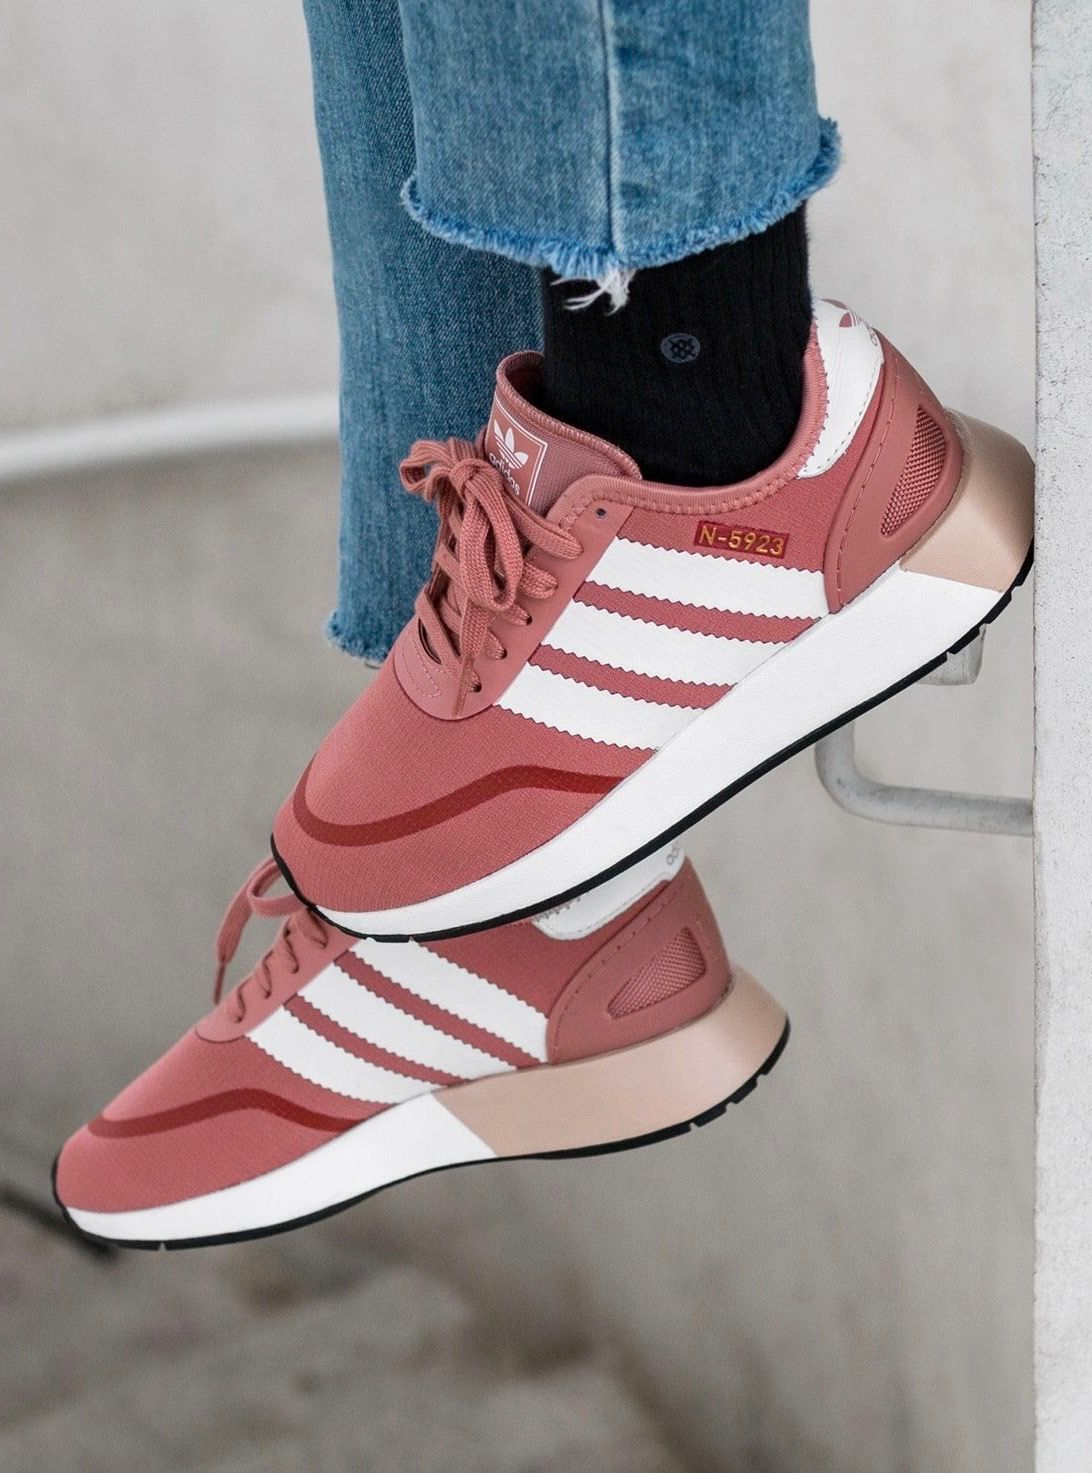 0a3e156f644 adidas Originals N-5923: Pink | Shoes in 2019 | Adidas iniki, Adidas ...